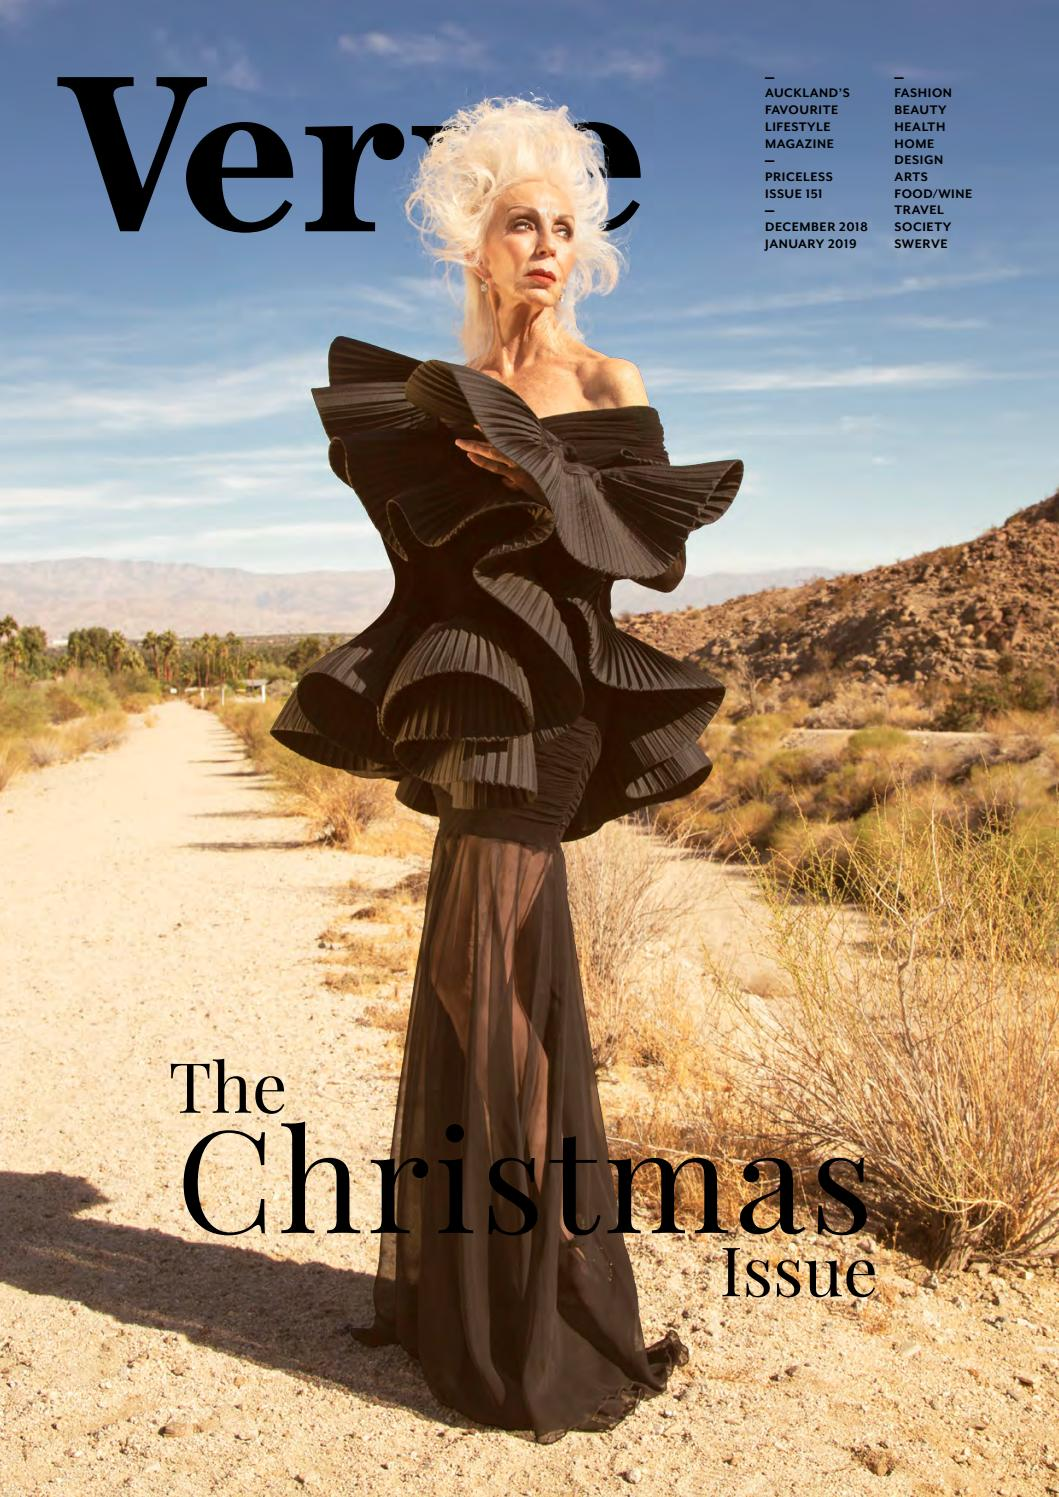 Verve. December 2018. Issue 151. by Verve Magazine - issuu 9e9abc1f31c73